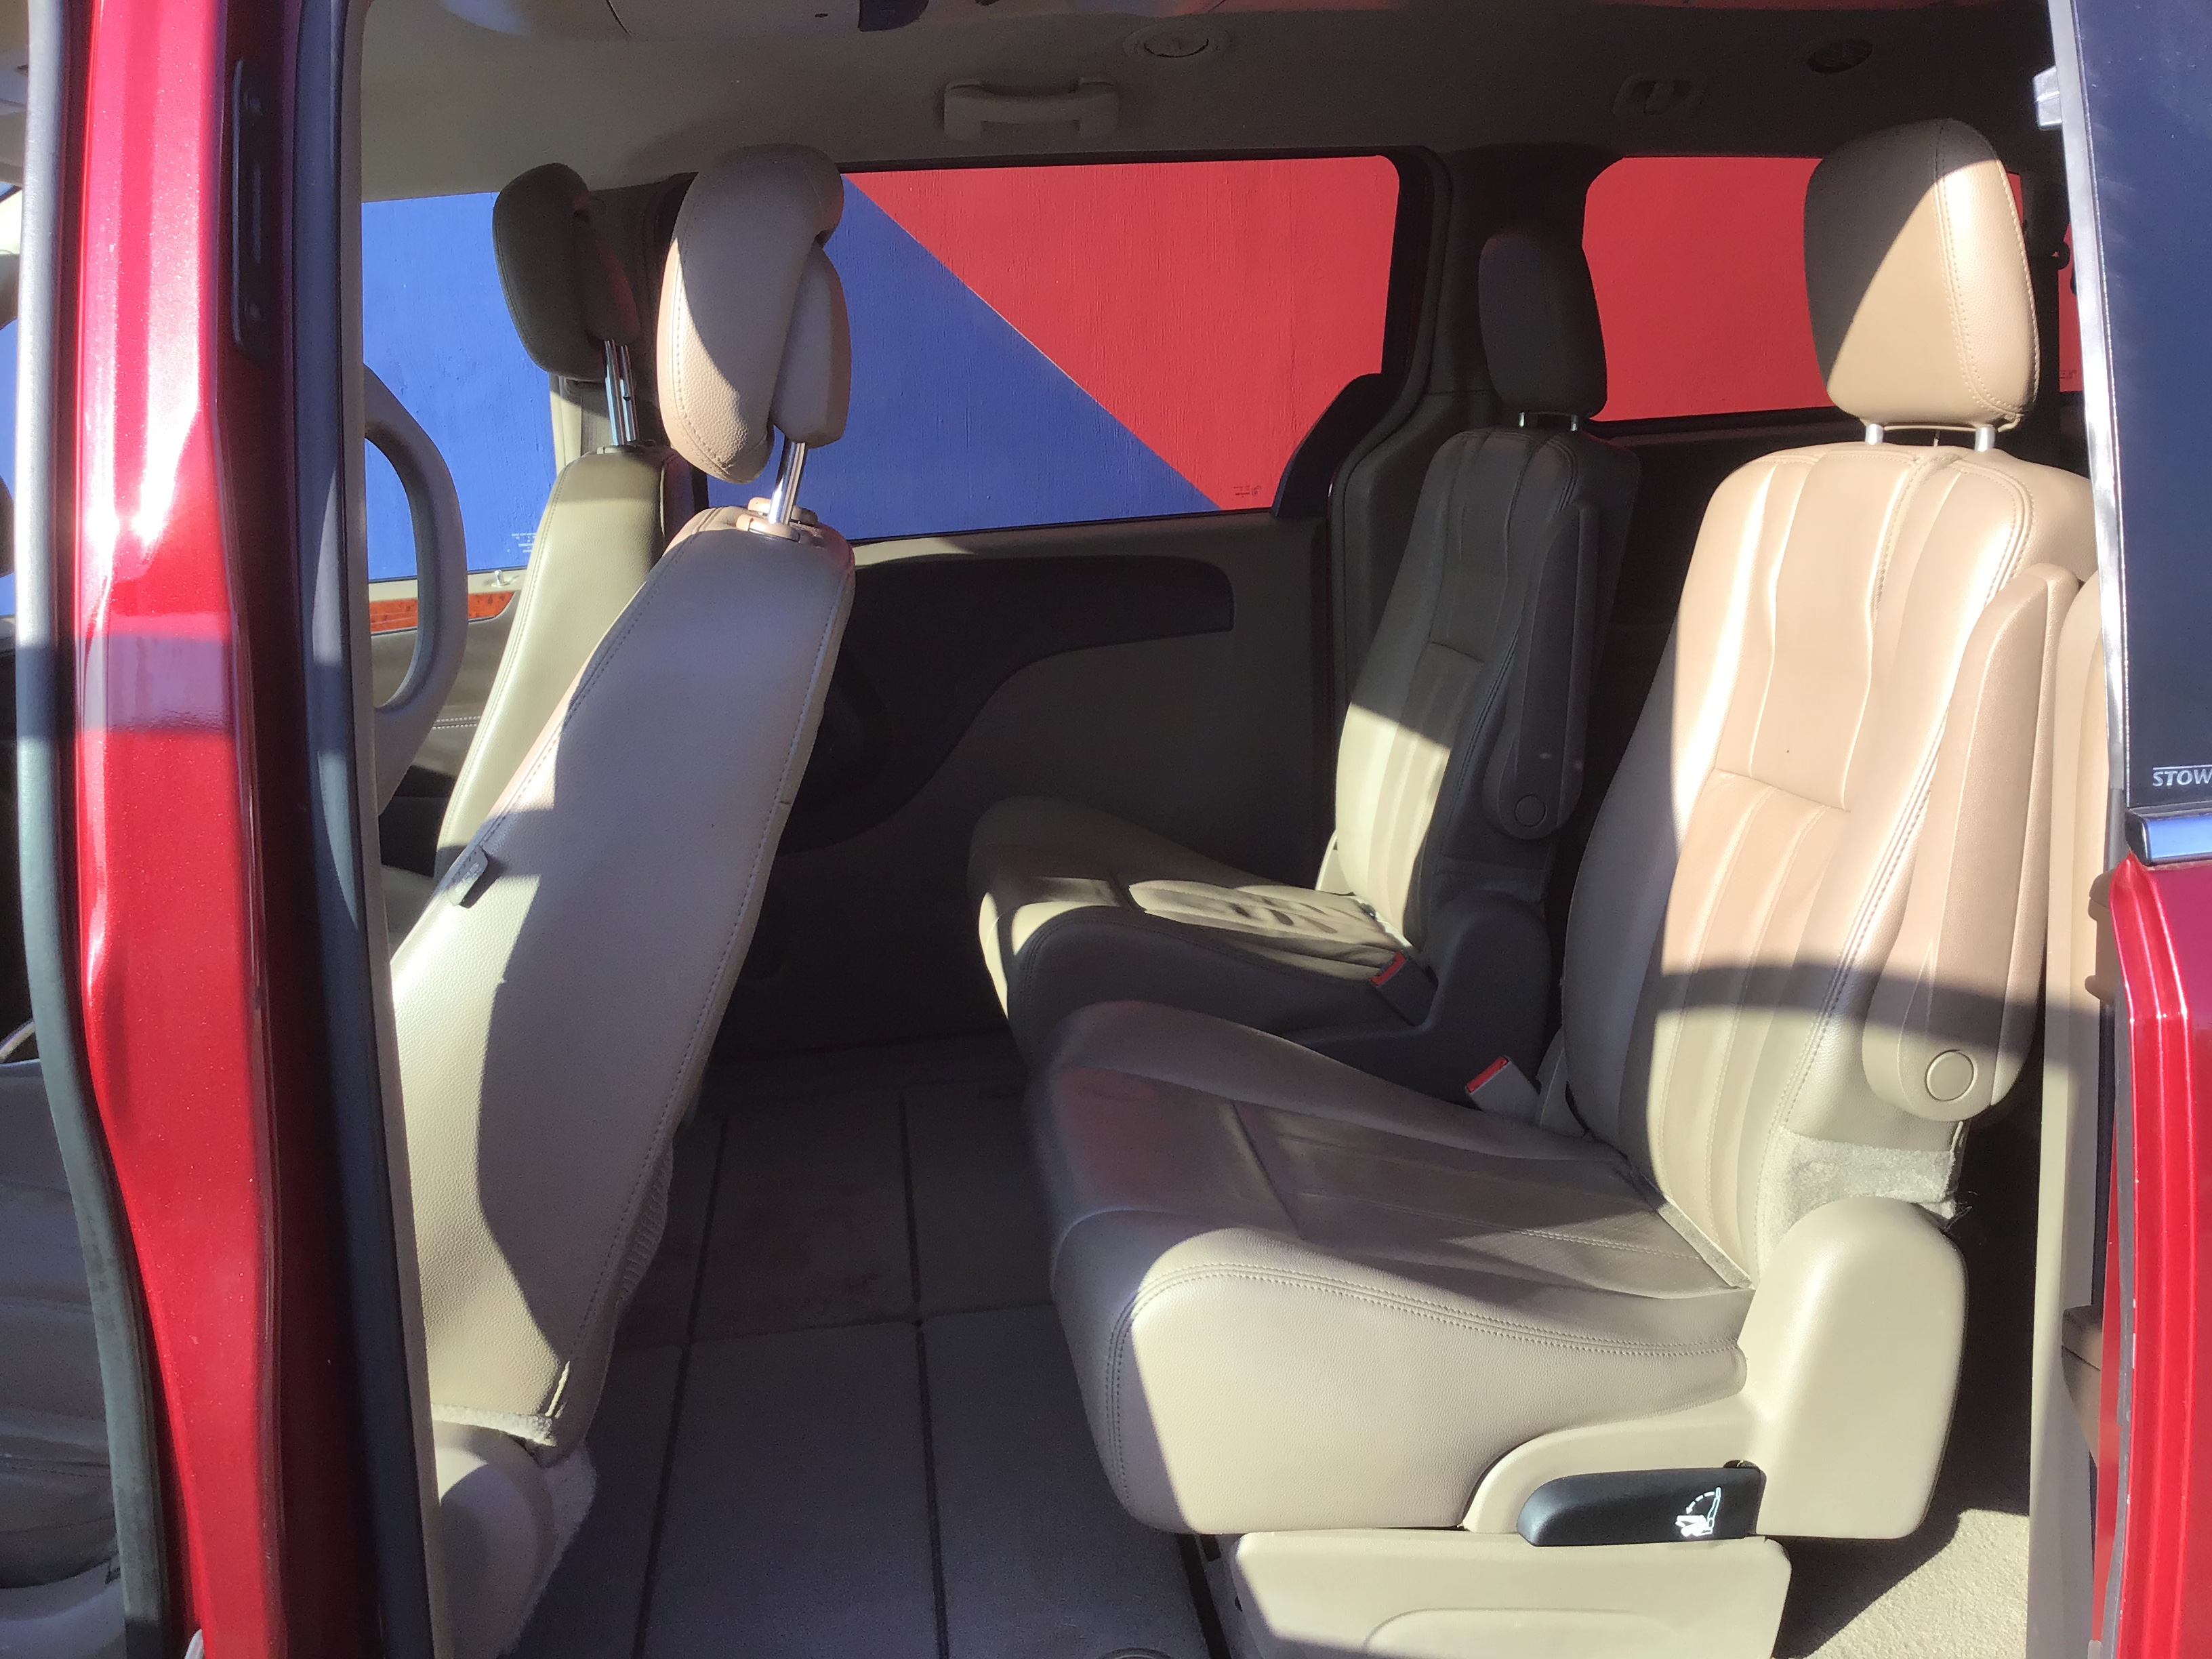 used vehicle - Passenger Van CHRYSLER TOWN AND COUNTRY 2012